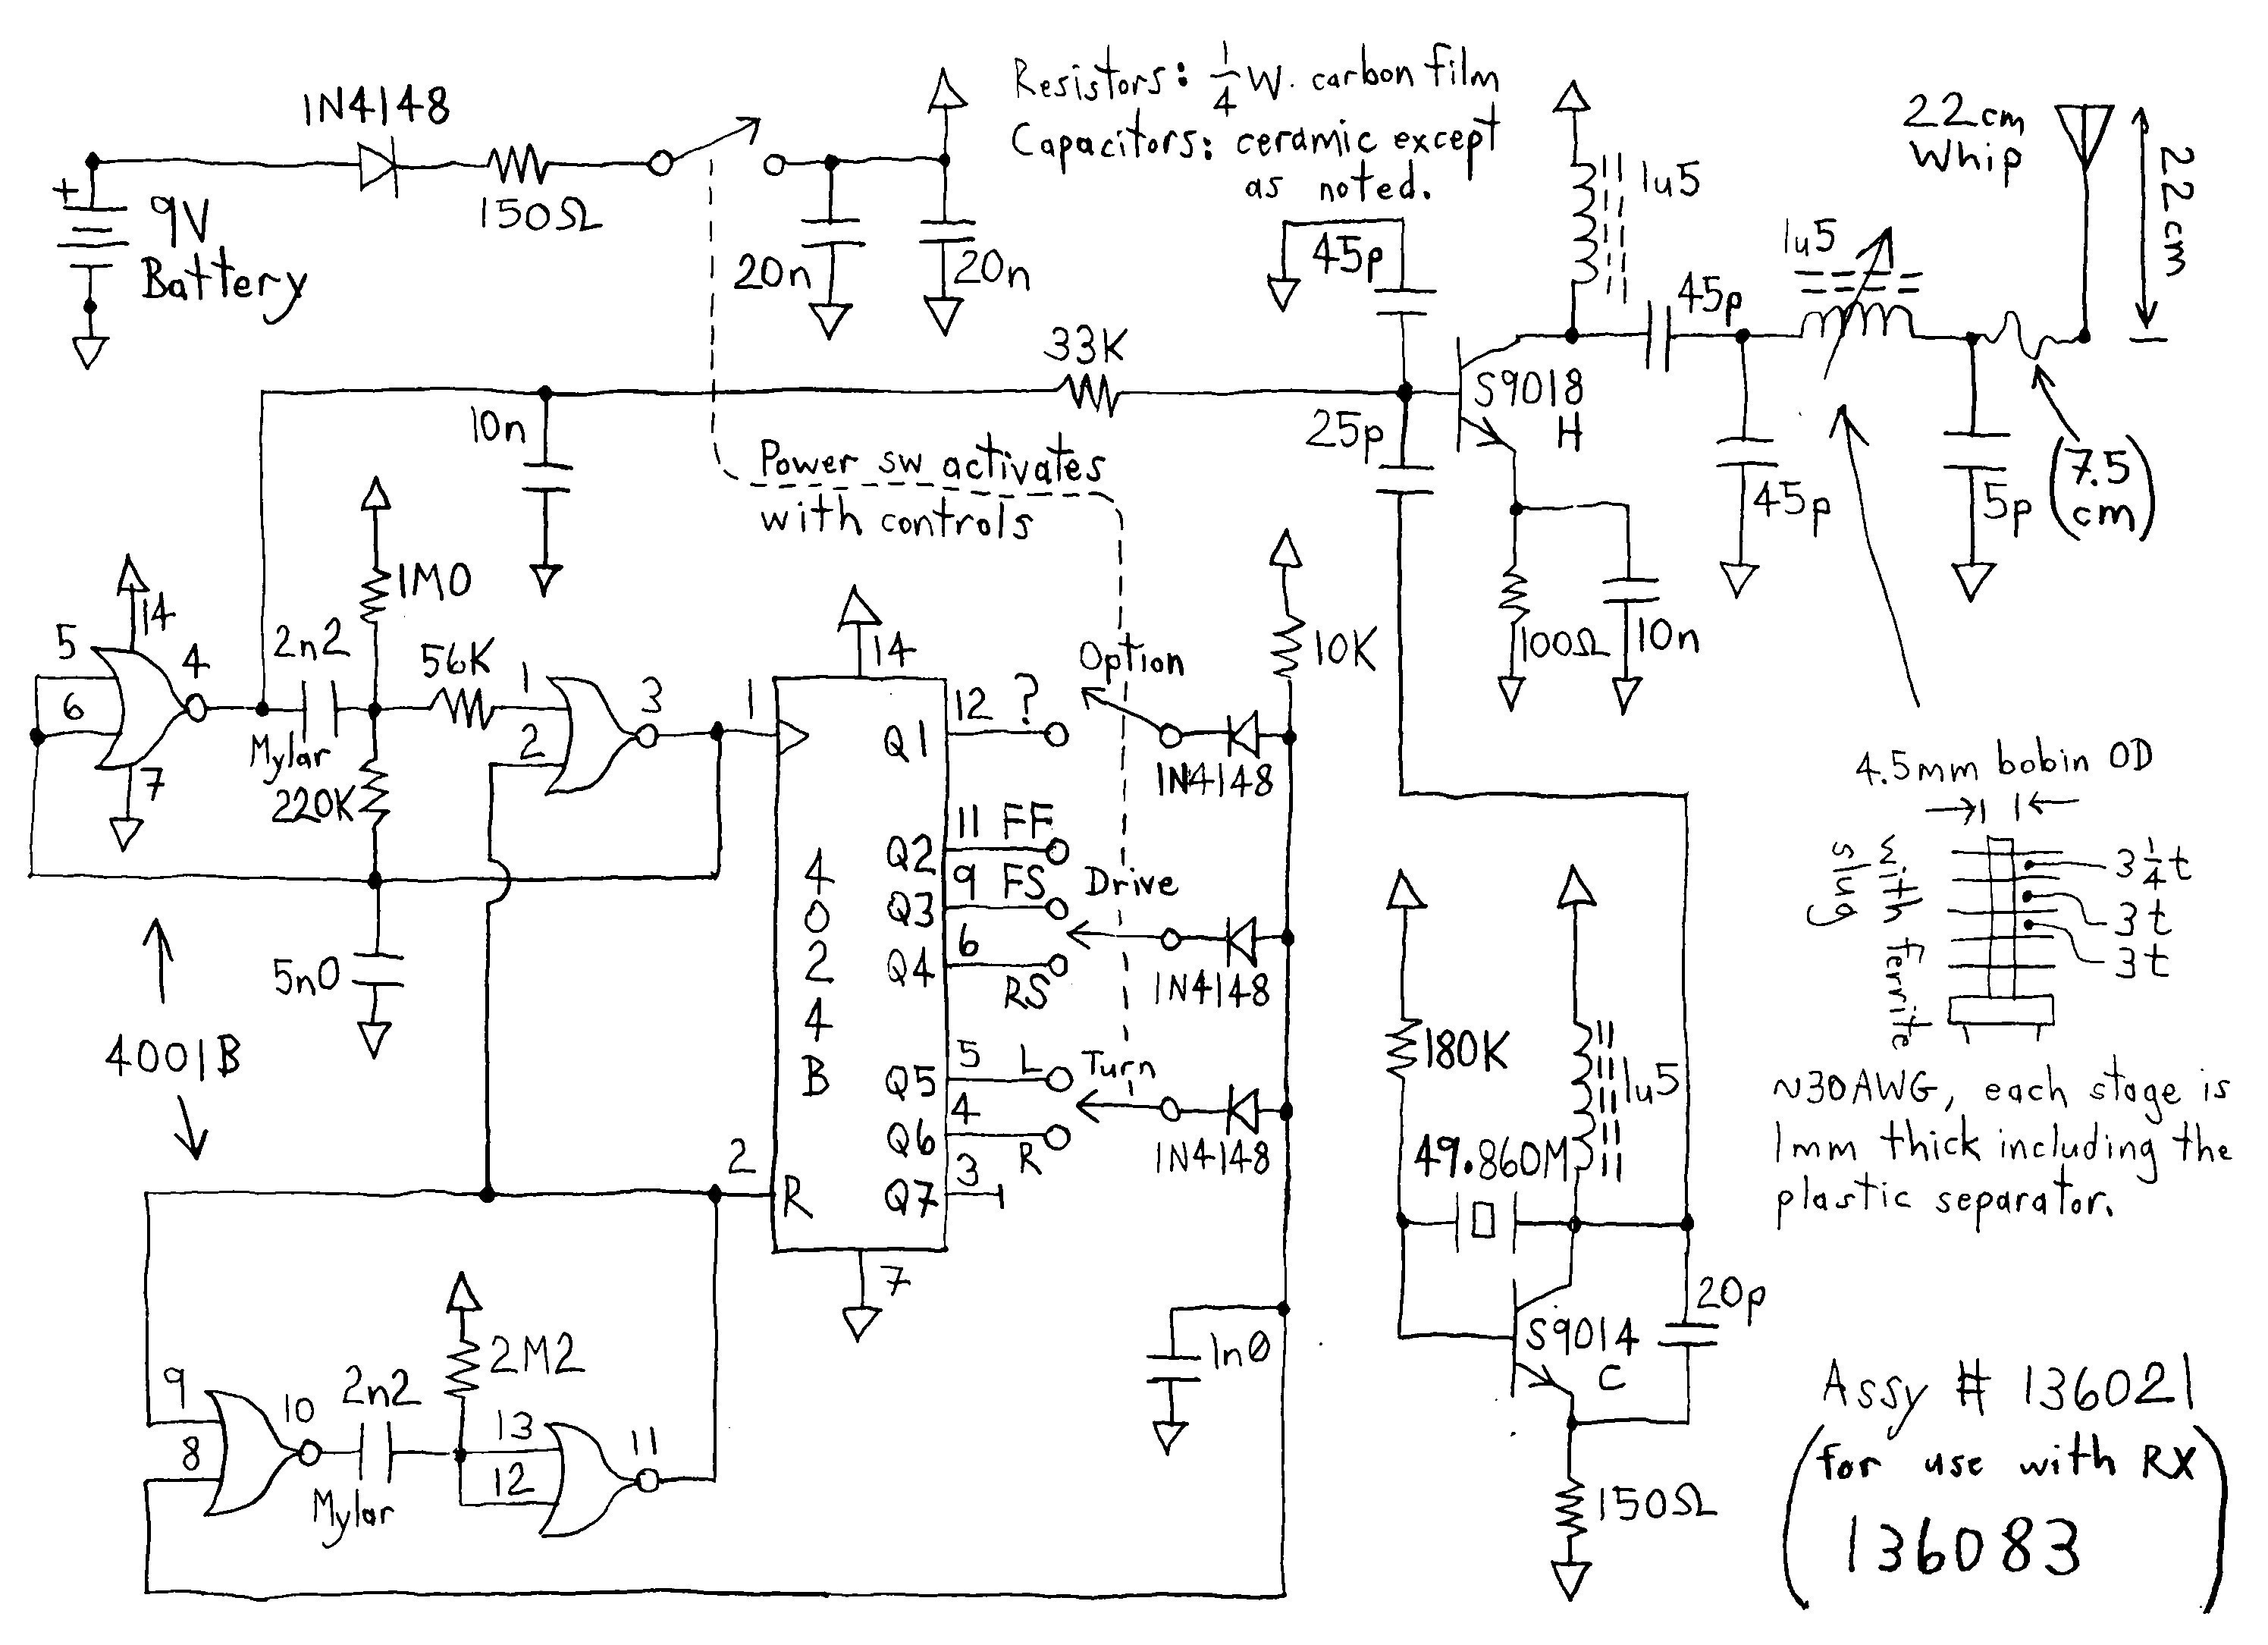 F Injector Wiring Diagram on 2001 f350 ignition switch, 2011 ford f350 fuse diagram, 2001 f350 fuel system, 2001 f350 fuel tank, 2001 f350 owners manual, 2001 f350 solenoid, 2001 f350 headlight, 2001 f350 thermostat, 2001 f250 fuse box diagram, 2001 f350 accessories, 2001 f350 frame, 2001 f350 wheels, 2001 f350 suspension, 2001 f350 spark plugs, 2001 f350 starter, 2001 f350 chassis,